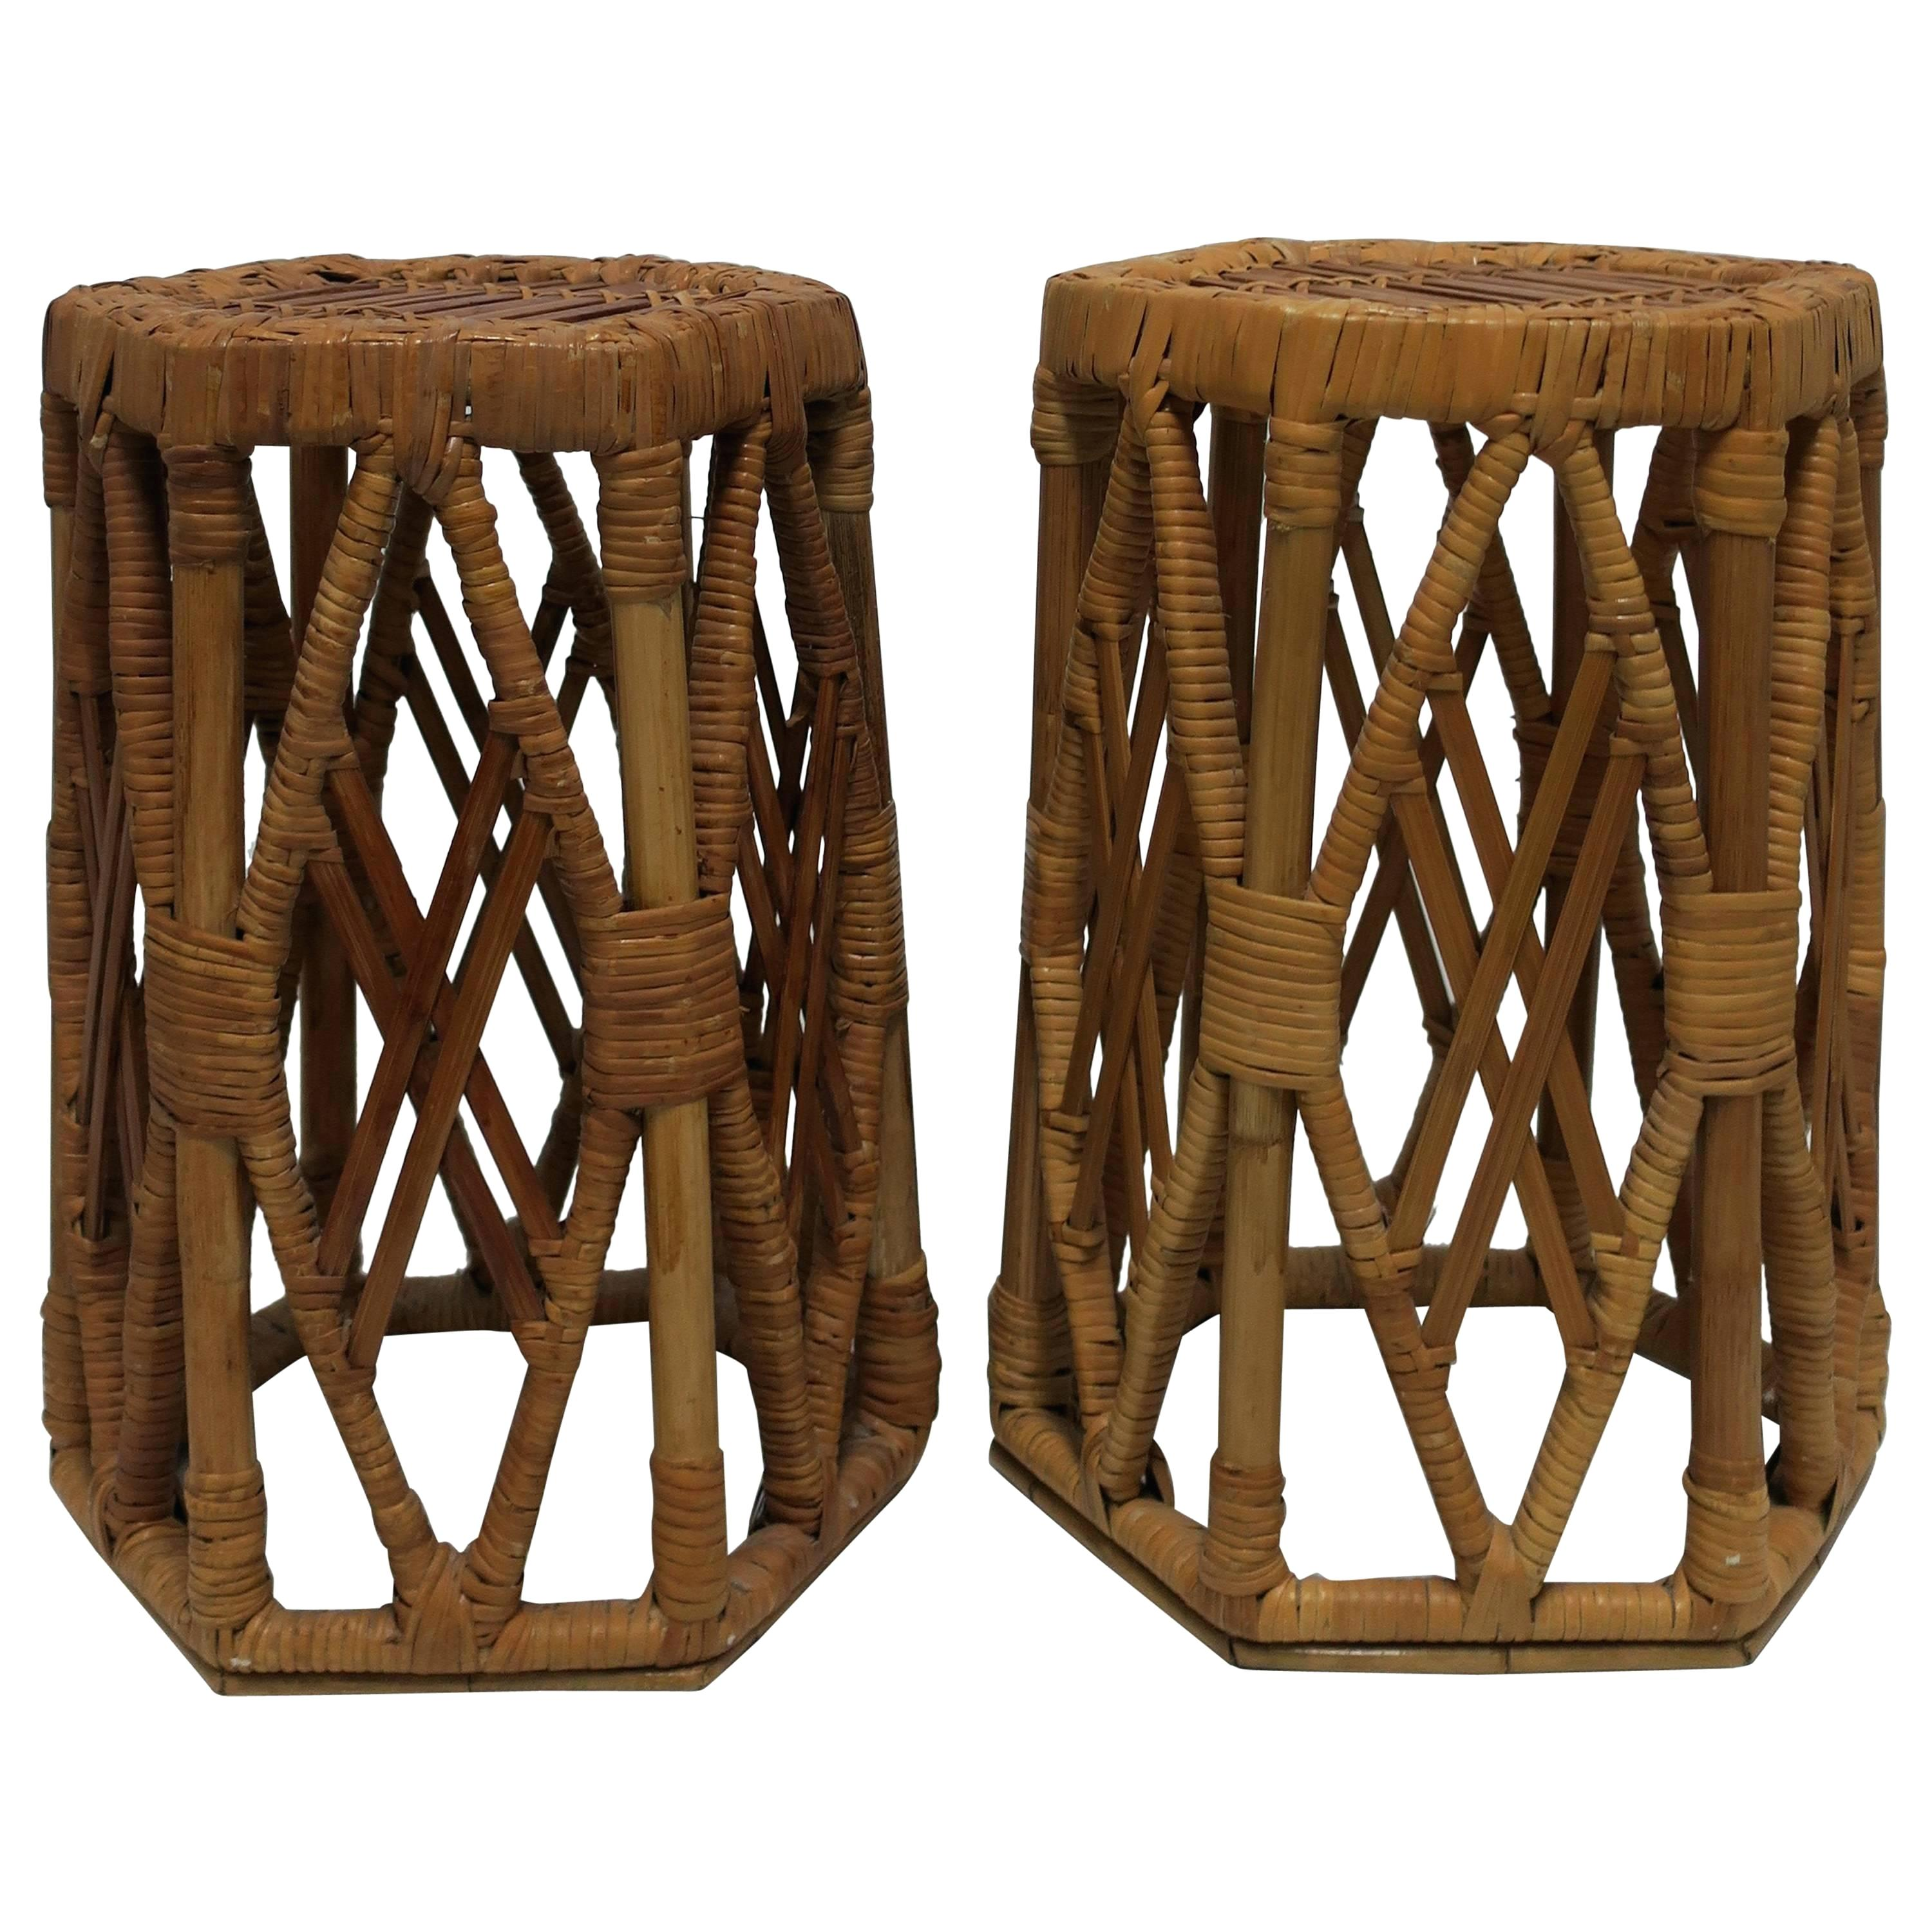 wicker side tables cizmedecauciuc info pair vintage hexagon rattan for bedside table lamp ikea outdoor brown modern accent with drawer dale tiffany dragonfly lily dining and